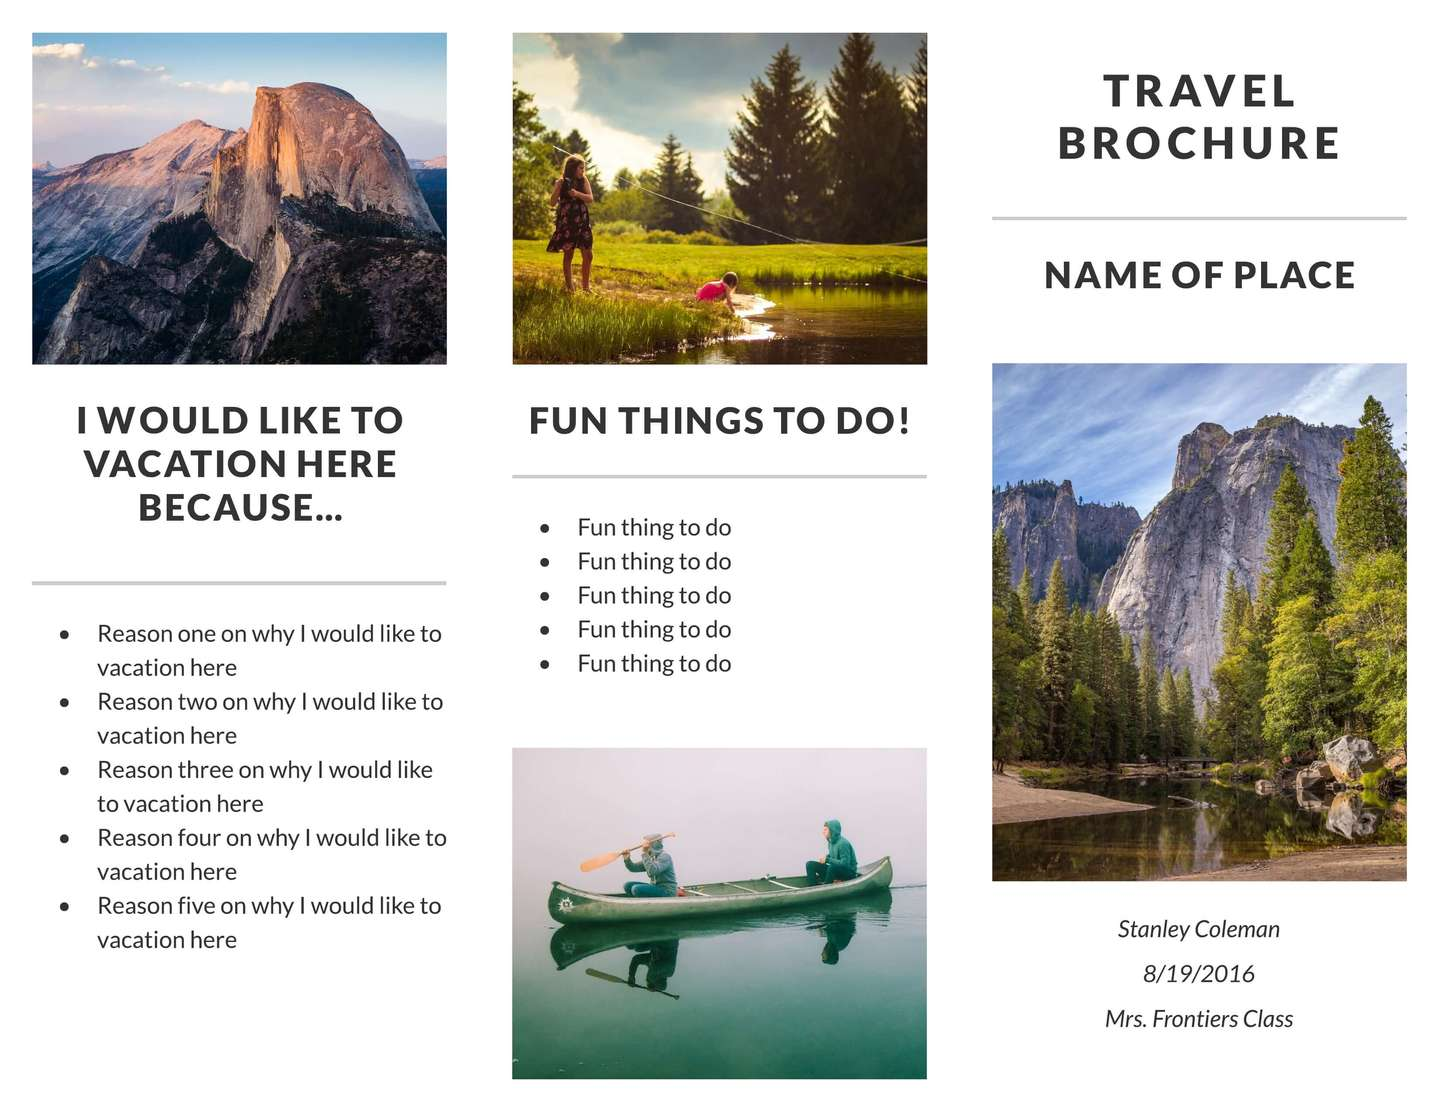 Free Travel Brochure Templates Examples Free Templates - Travel brochure templates for students